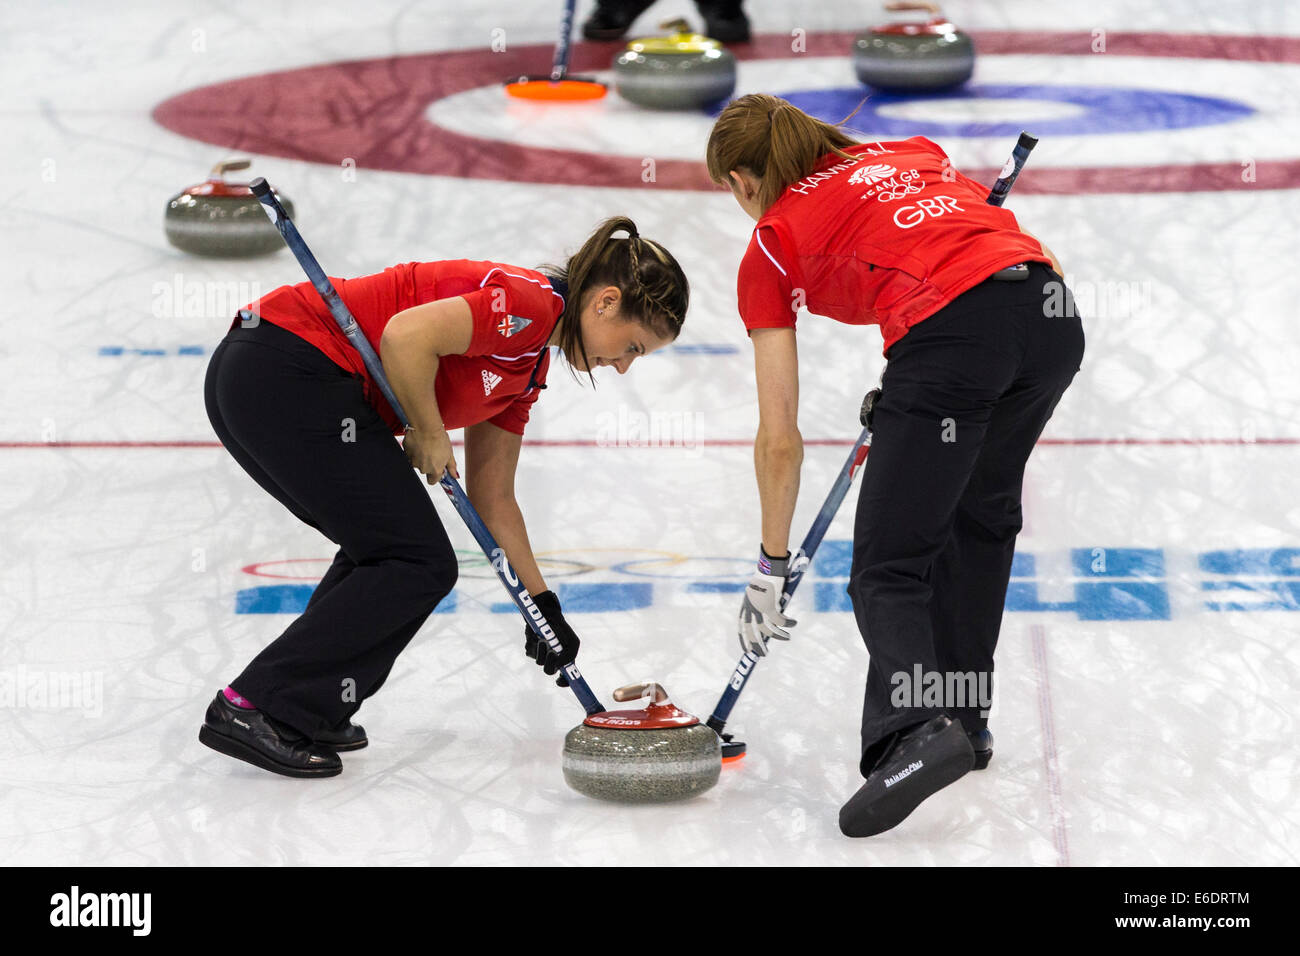 Vicki Adams (L) and Claire Hamilton of Team Great Britain sweeping during  Women's curling competition at the - Stock Image